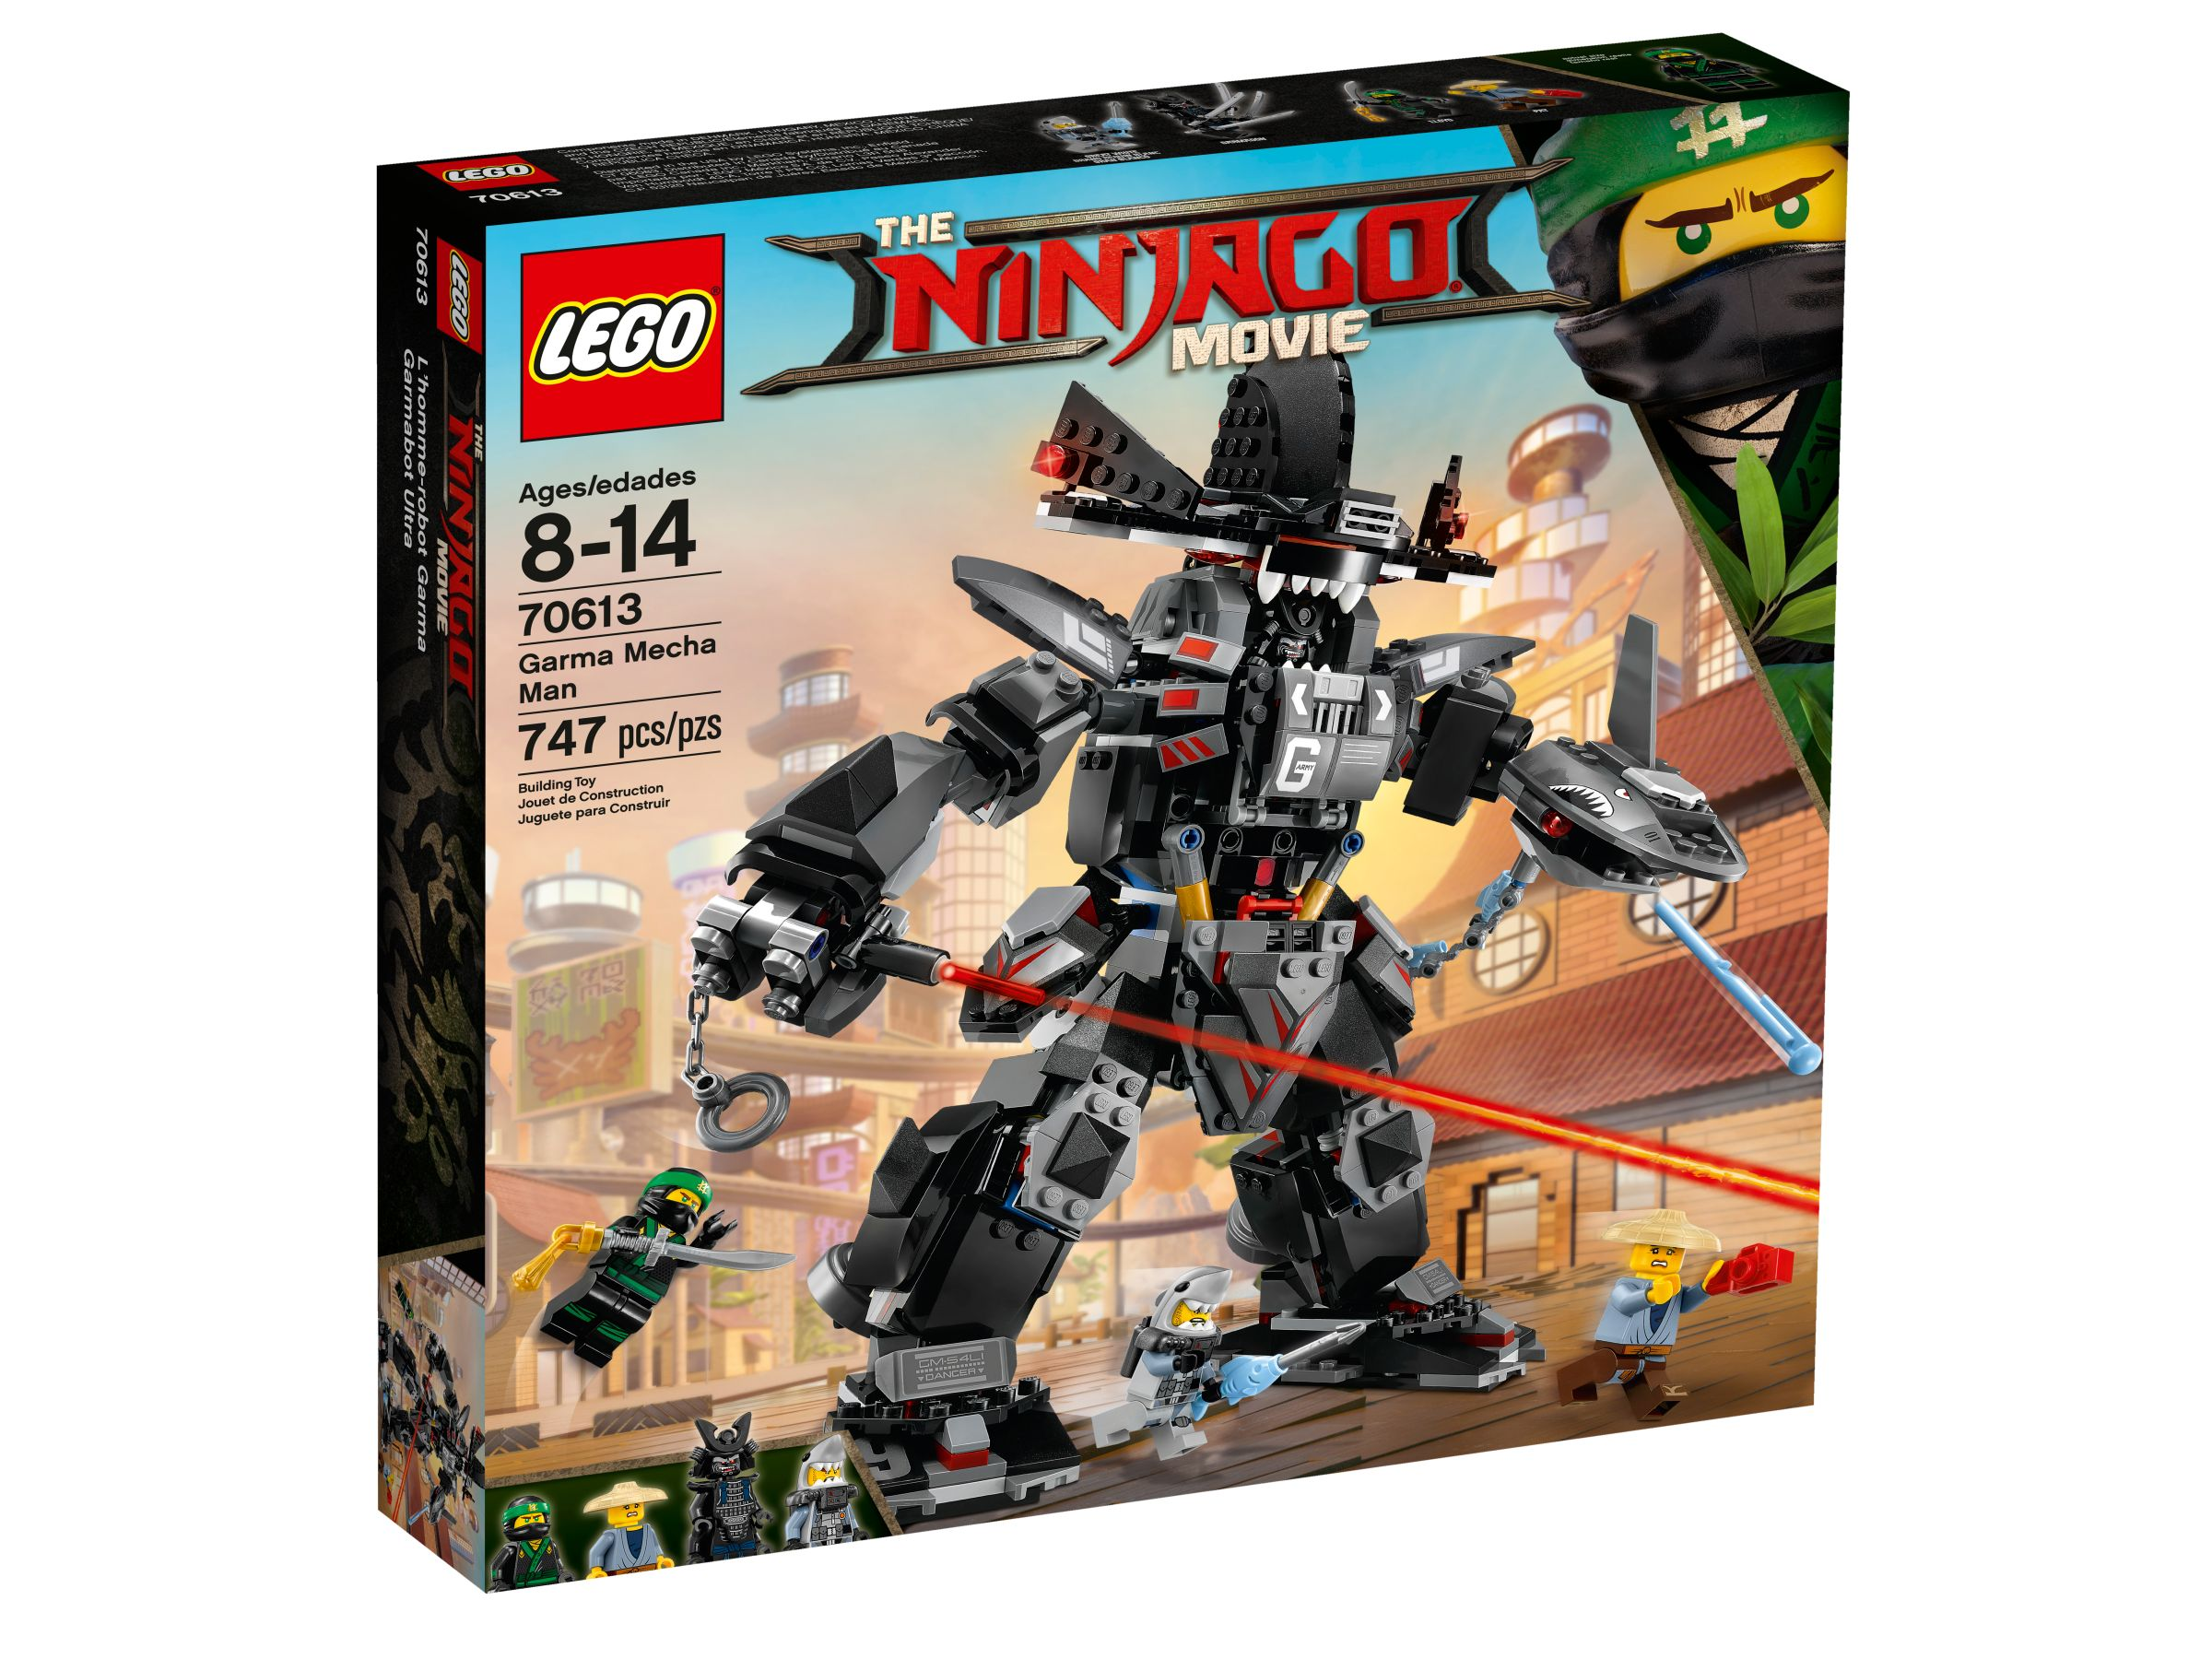 LEGO The LEGO Ninjago Movie 70613 Garmadon's Robo-Hai LEGO_70613_alt1.jpg